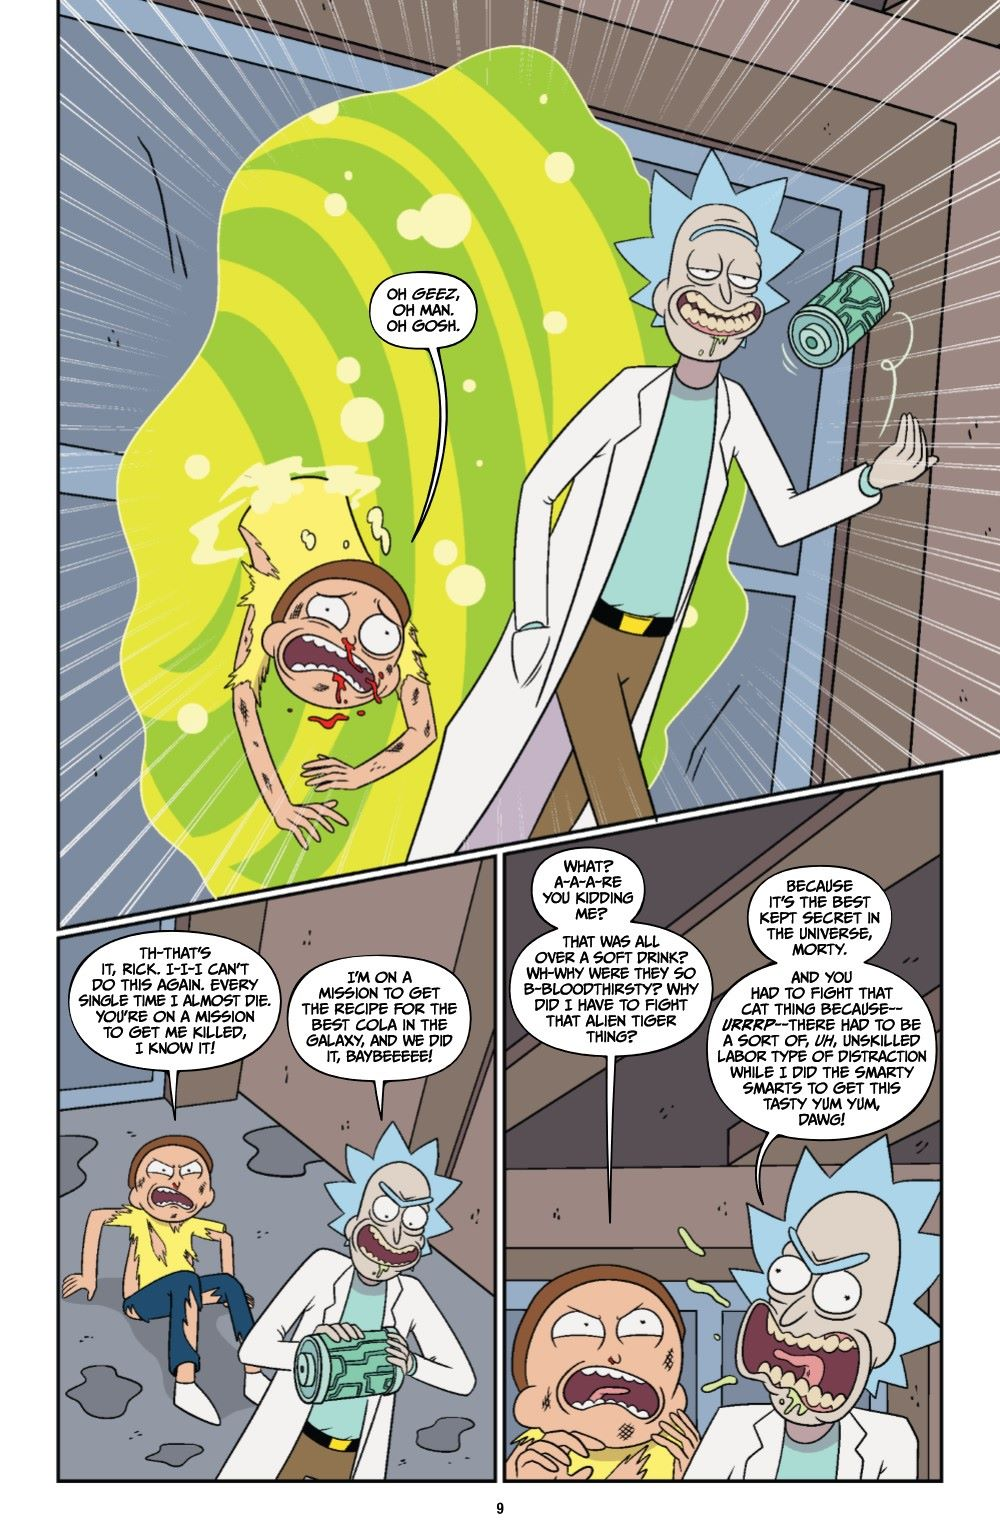 RICKMORTY-V12-TPB-REFERENCE-010 ComicList Previews: RICK AND MORTY VOLUME 12 TP